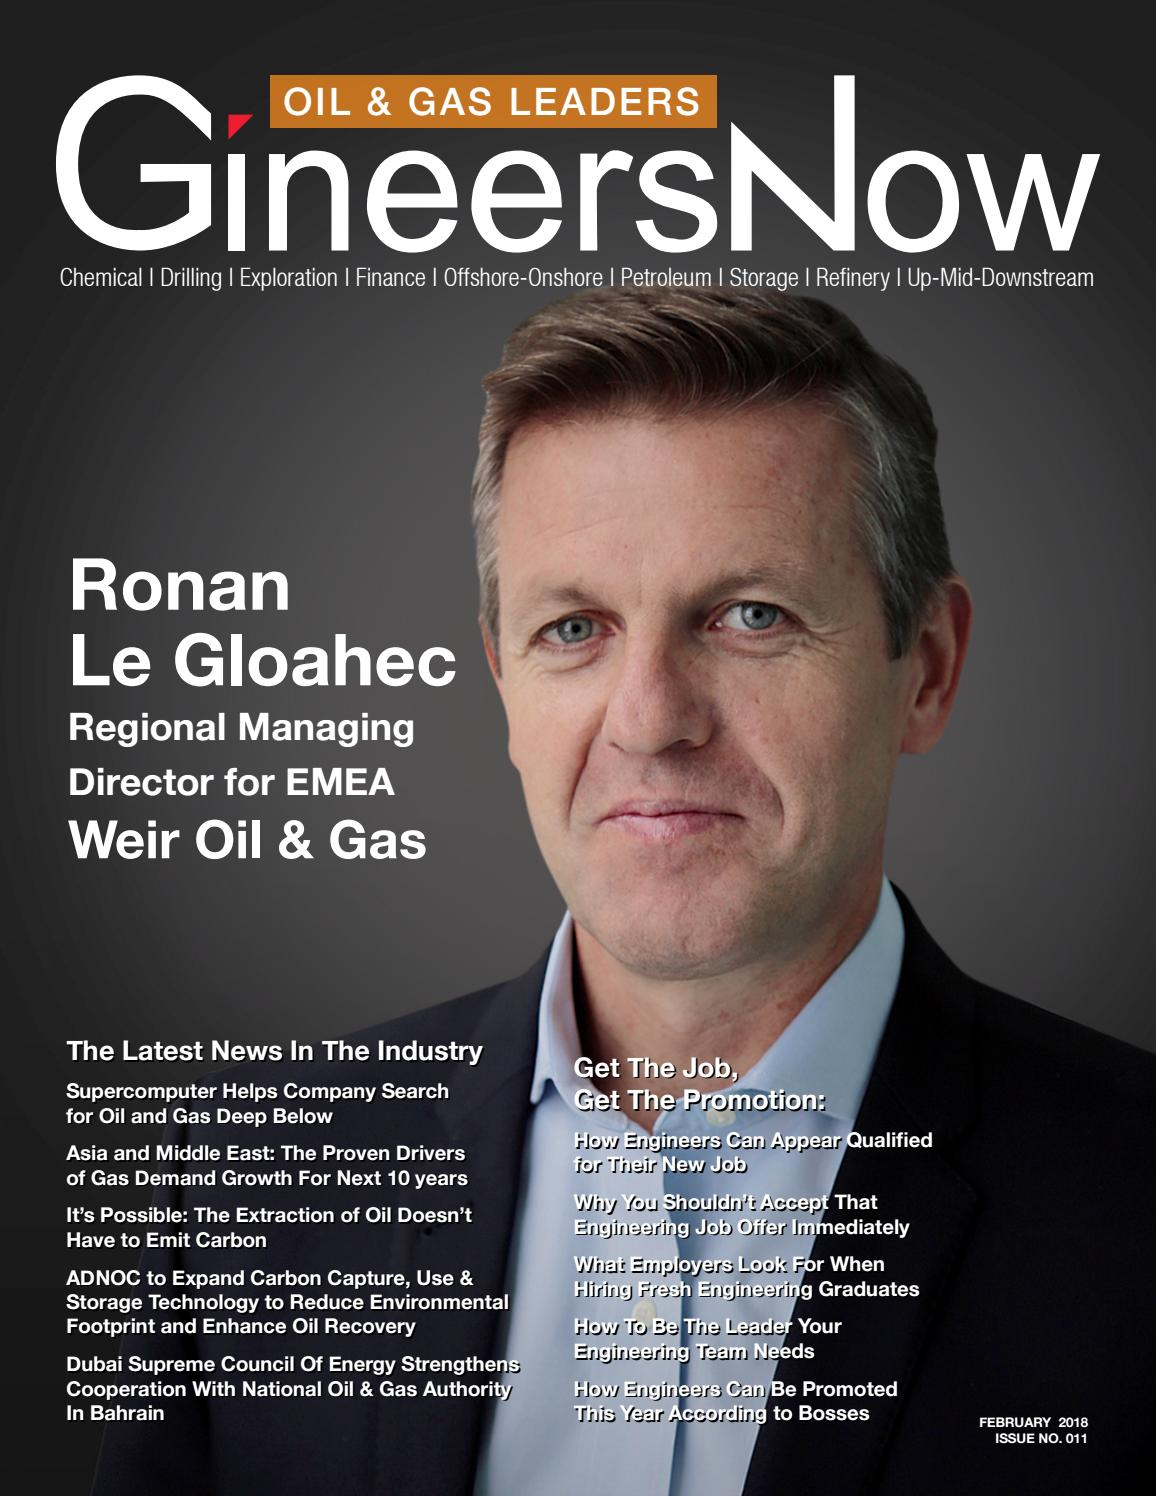 February 2018 Oil & Gas Leaders Issue 011 by GineersNow - issuu